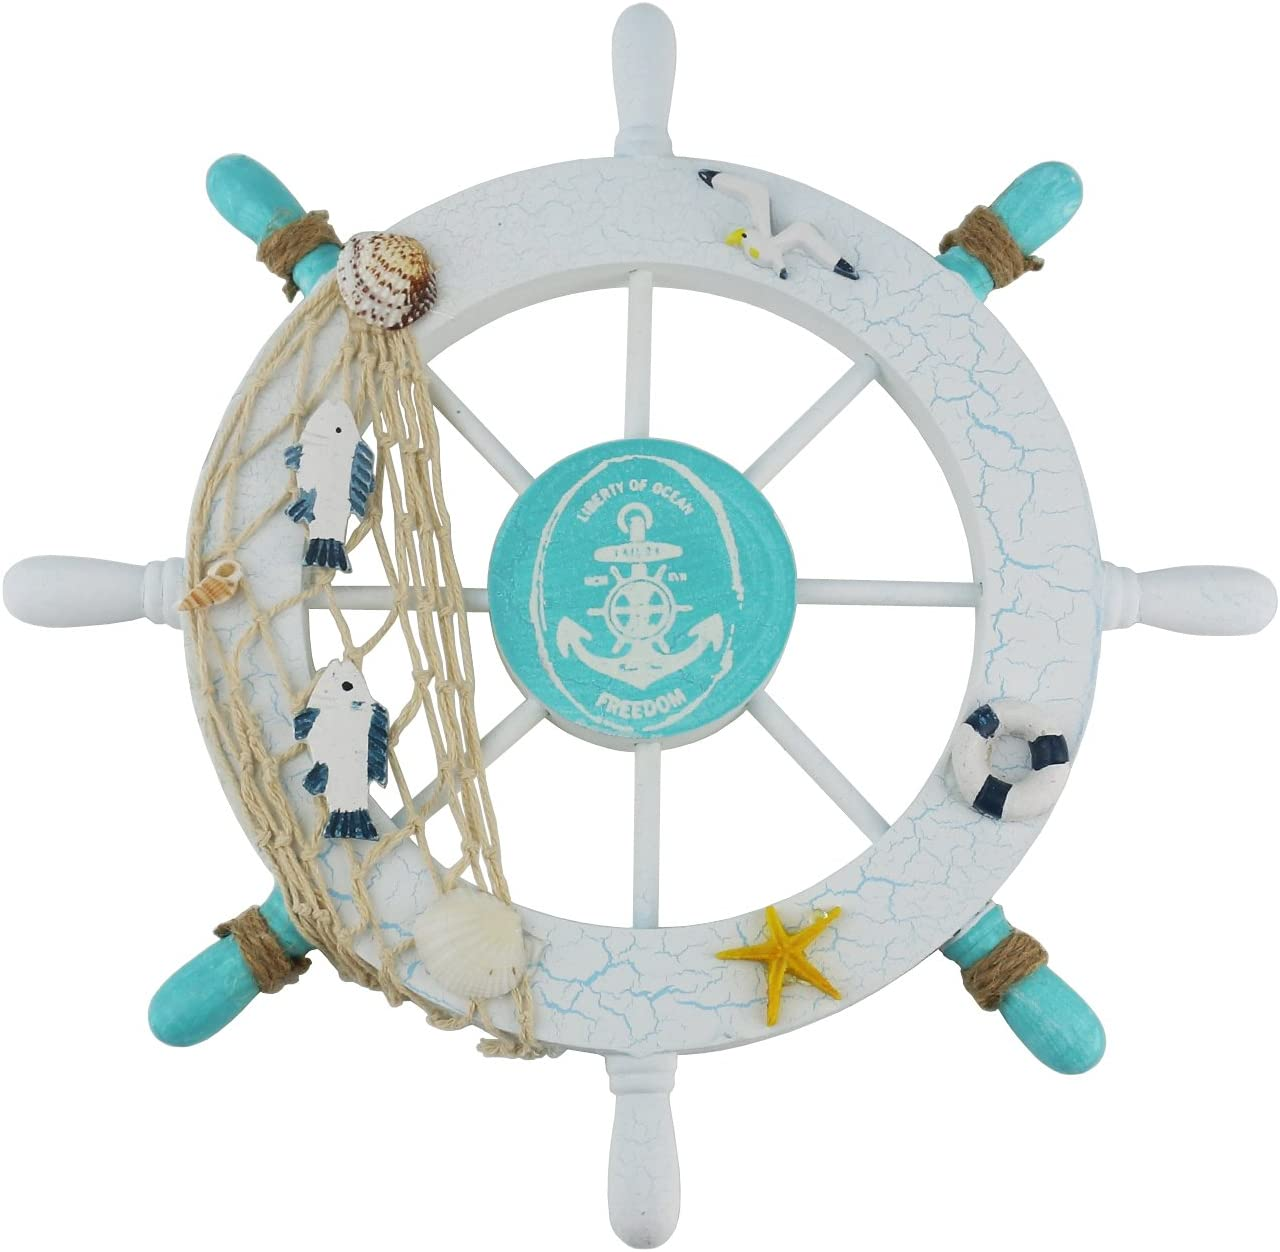 Ogrmar Mediterranean Nautical Wooden Boat Ship Steering Wheel/Handcrafted Wooden Ship Wheel Pirate Decor Wall and Door Hanging Ornament Plaque (White Fish)